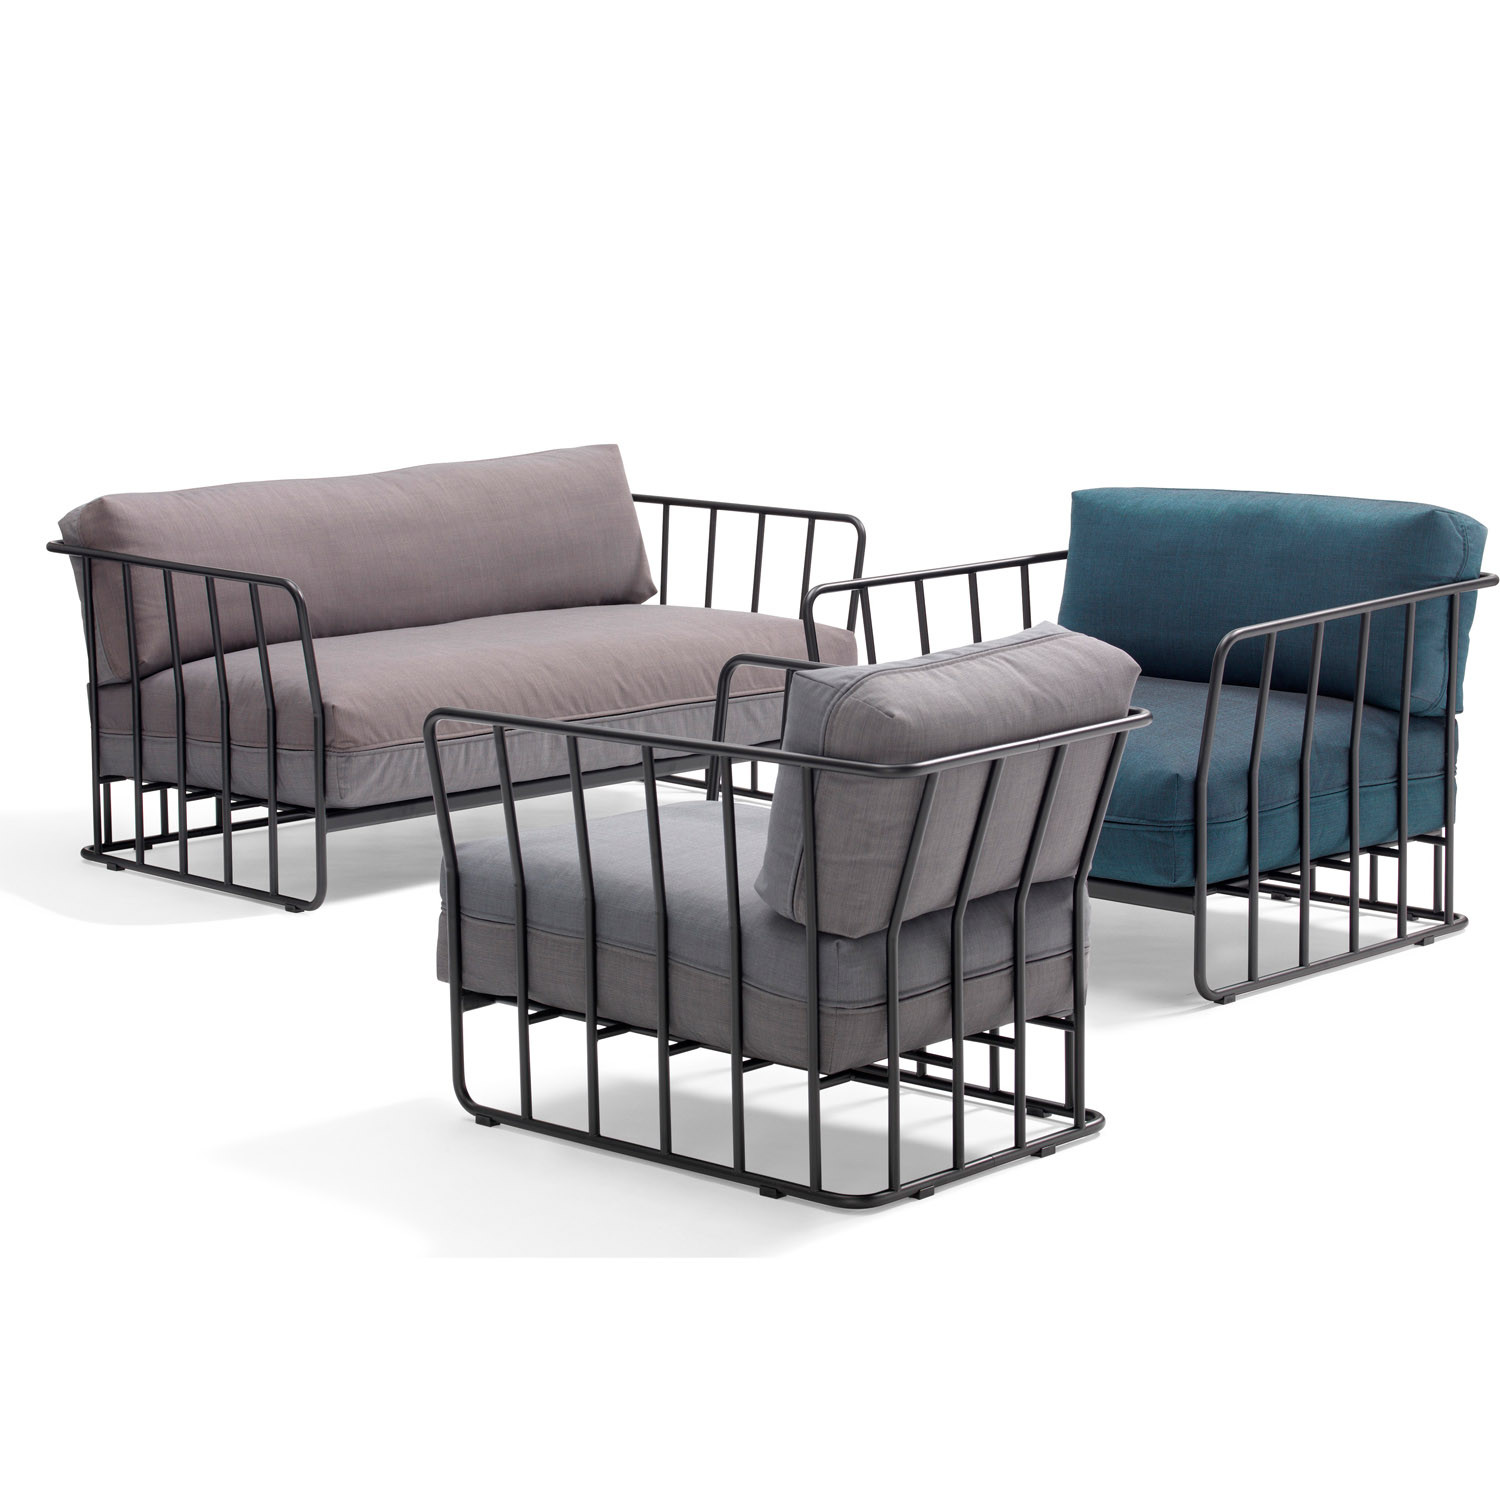 Code 27 Soft Seating from Bla Station